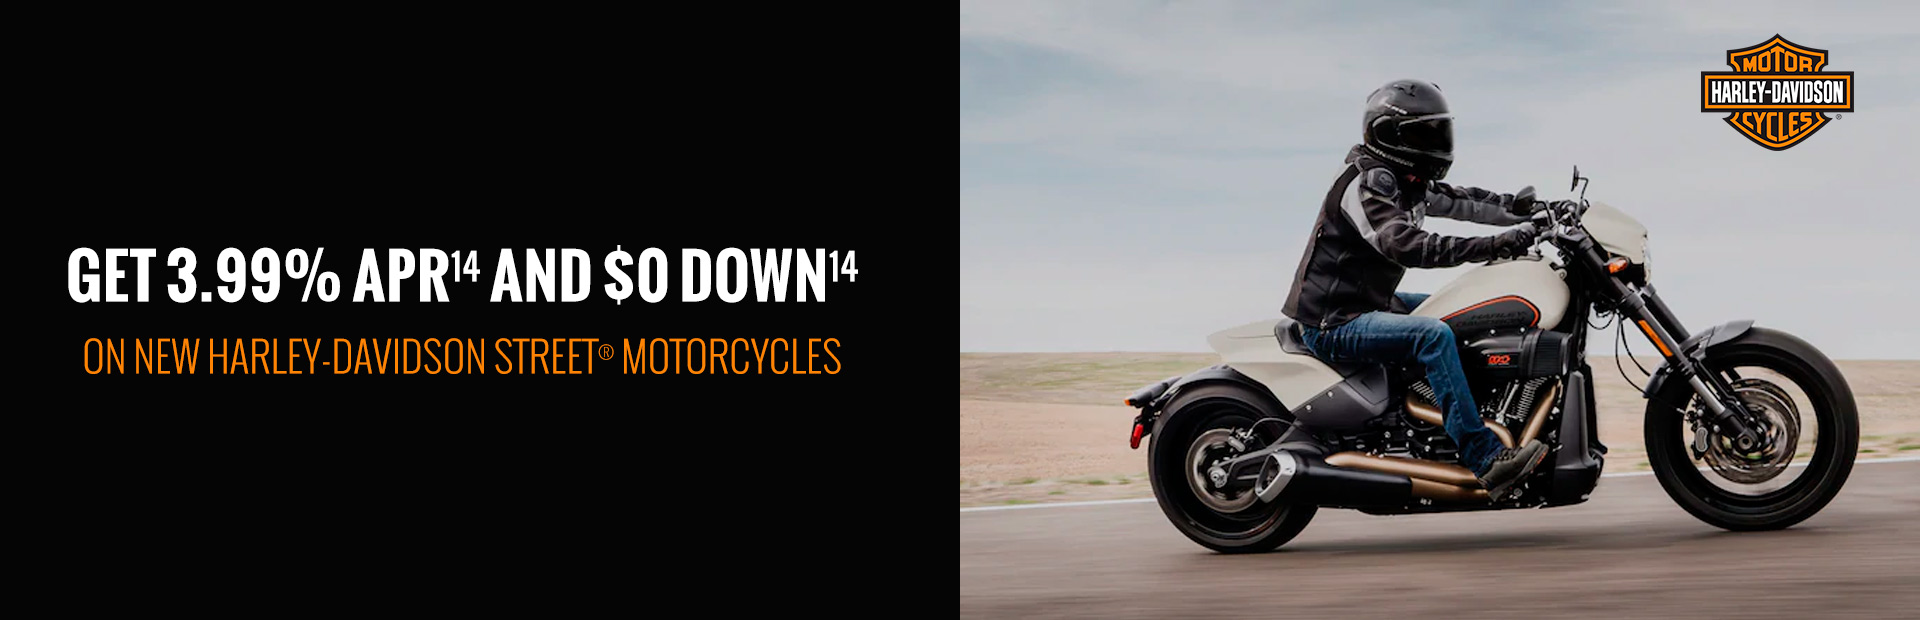 Harley-Davidson®: GET 3.99% APR & $0 DOWN ON NEW STREET MOTORCYCLES